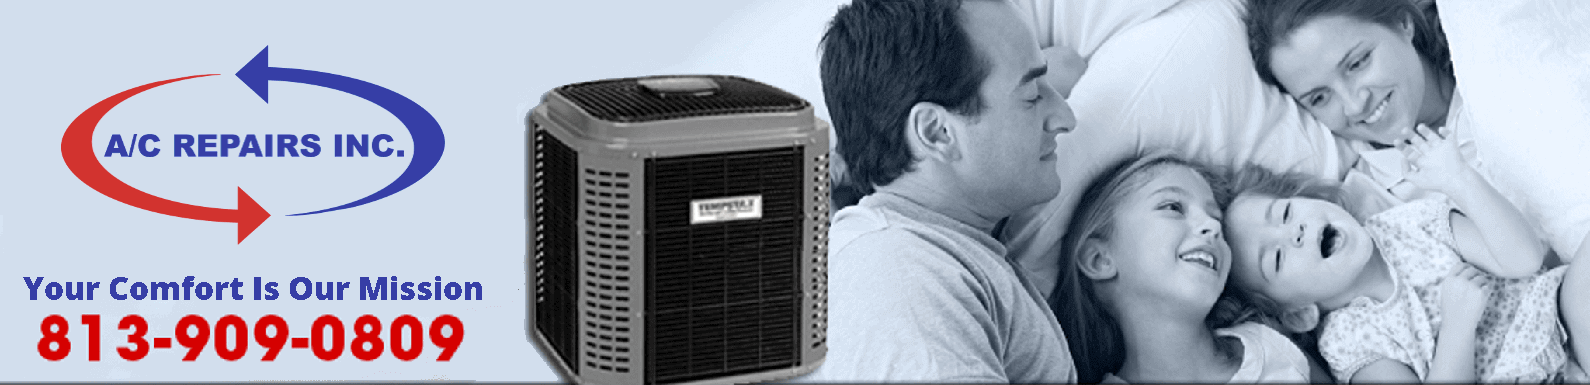 ac repair wesley chapel